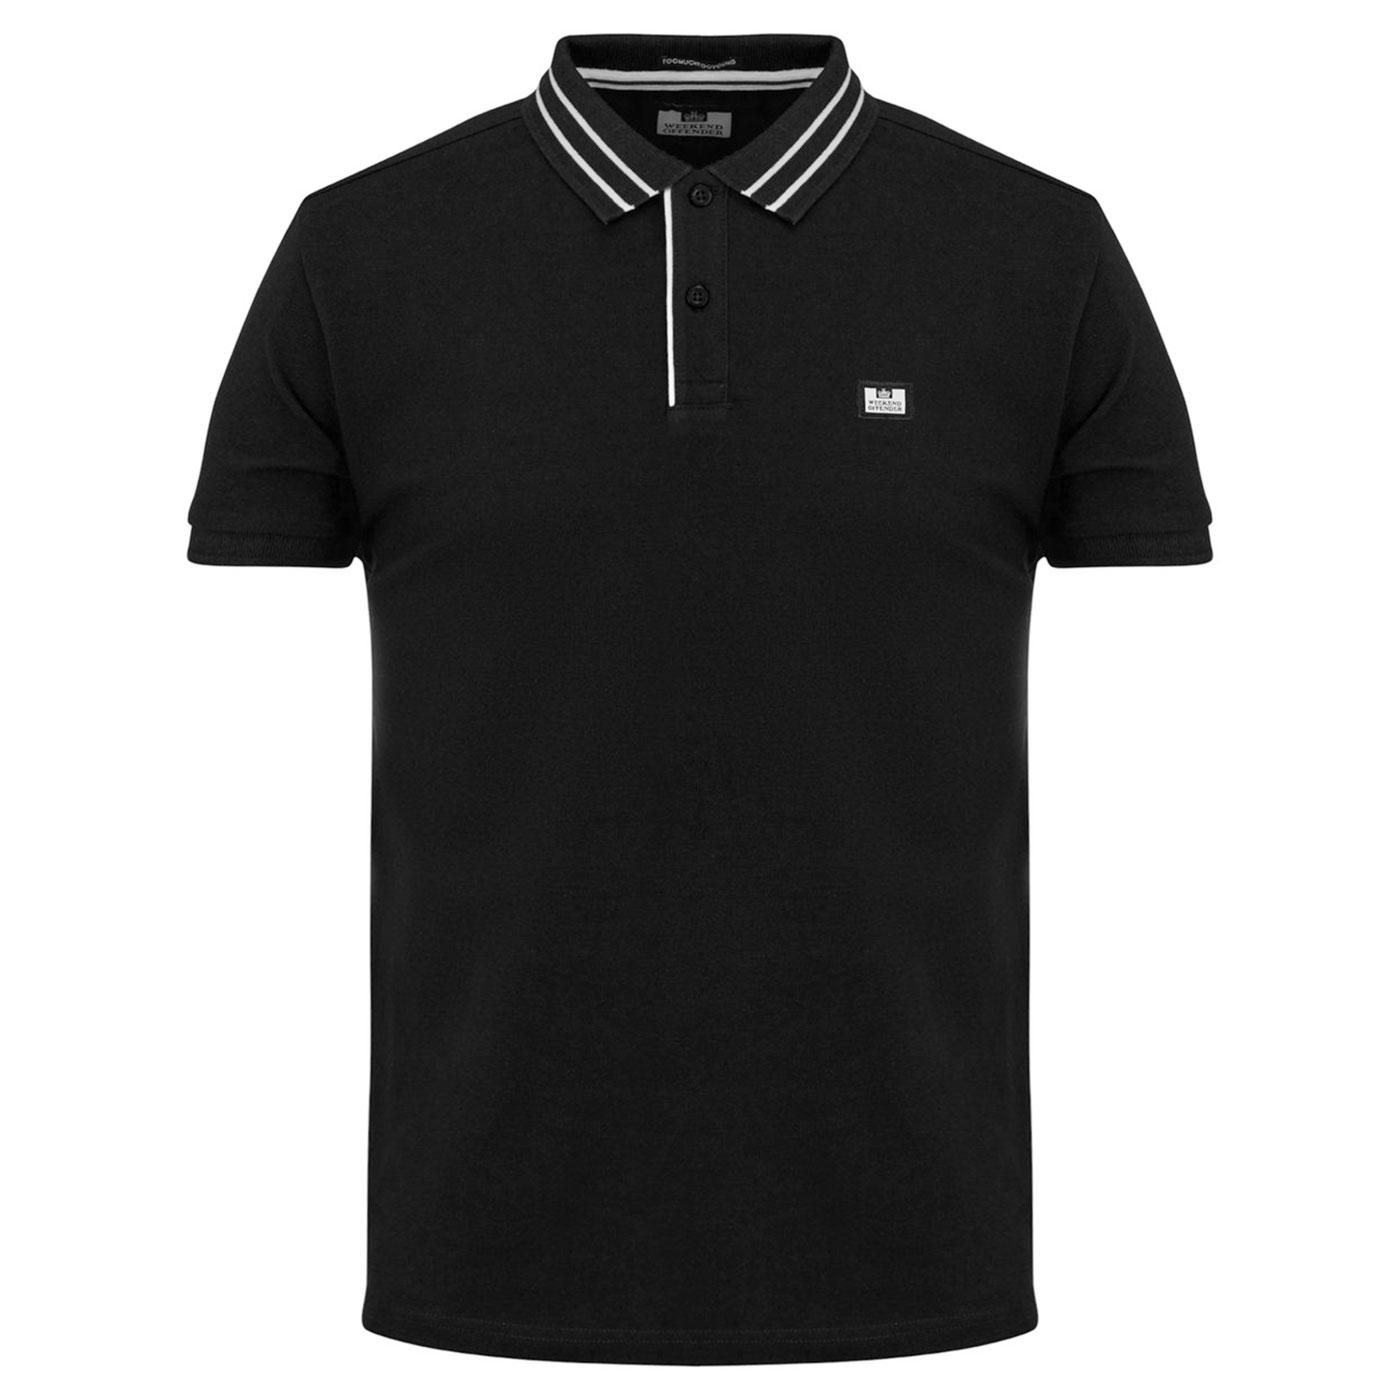 Frankie WEEKEND OFFENDER Mod Tipped Pique Polo